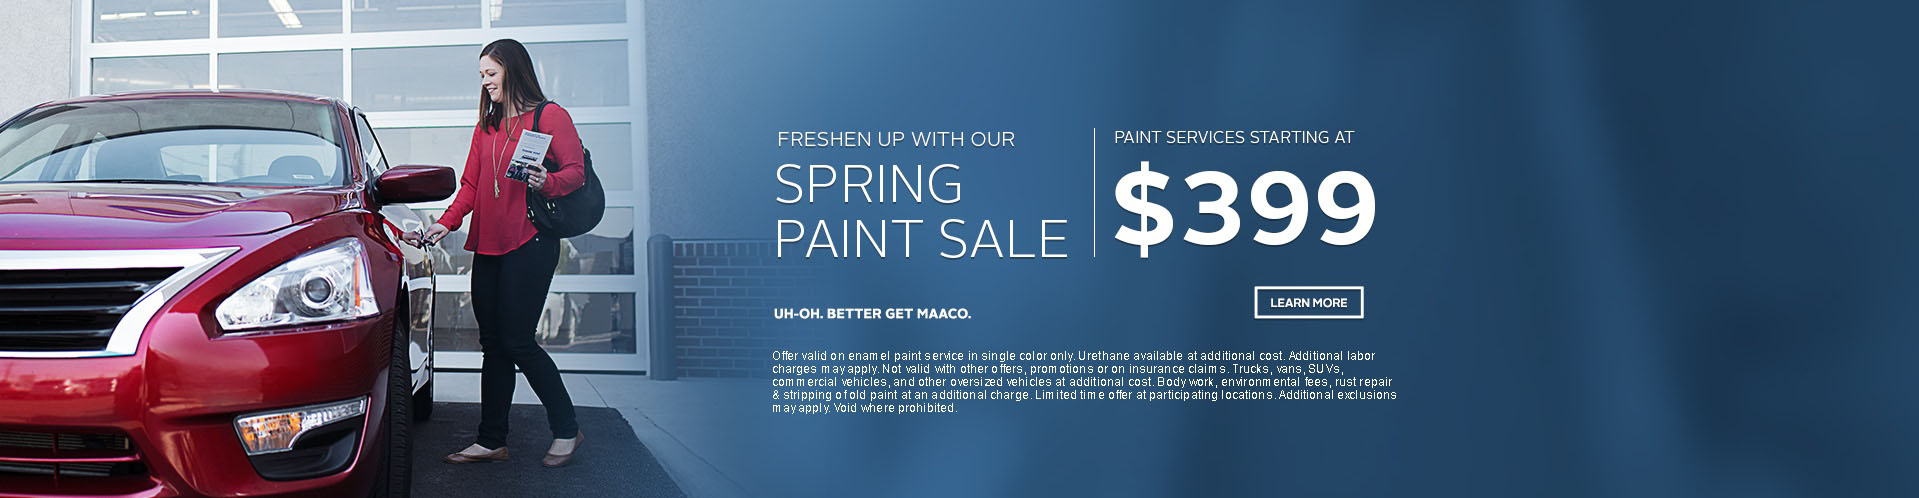 Maaco: Spring Paint Sale Starting at: $399, click Learn More for further details.